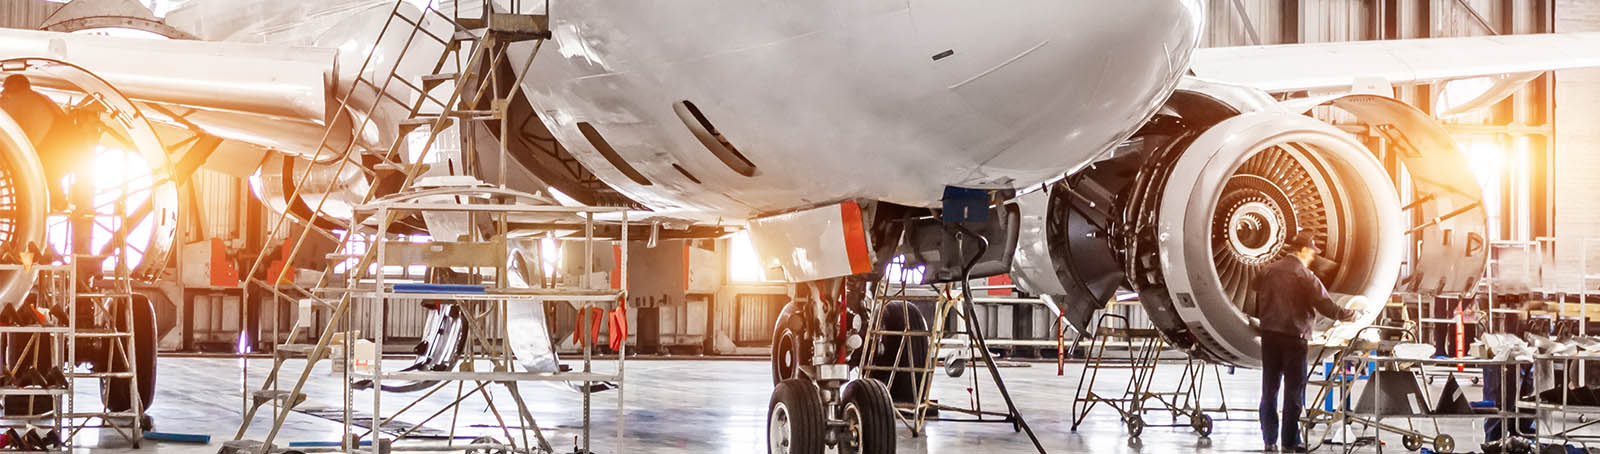 Aviation engineering workwear and safety clothing